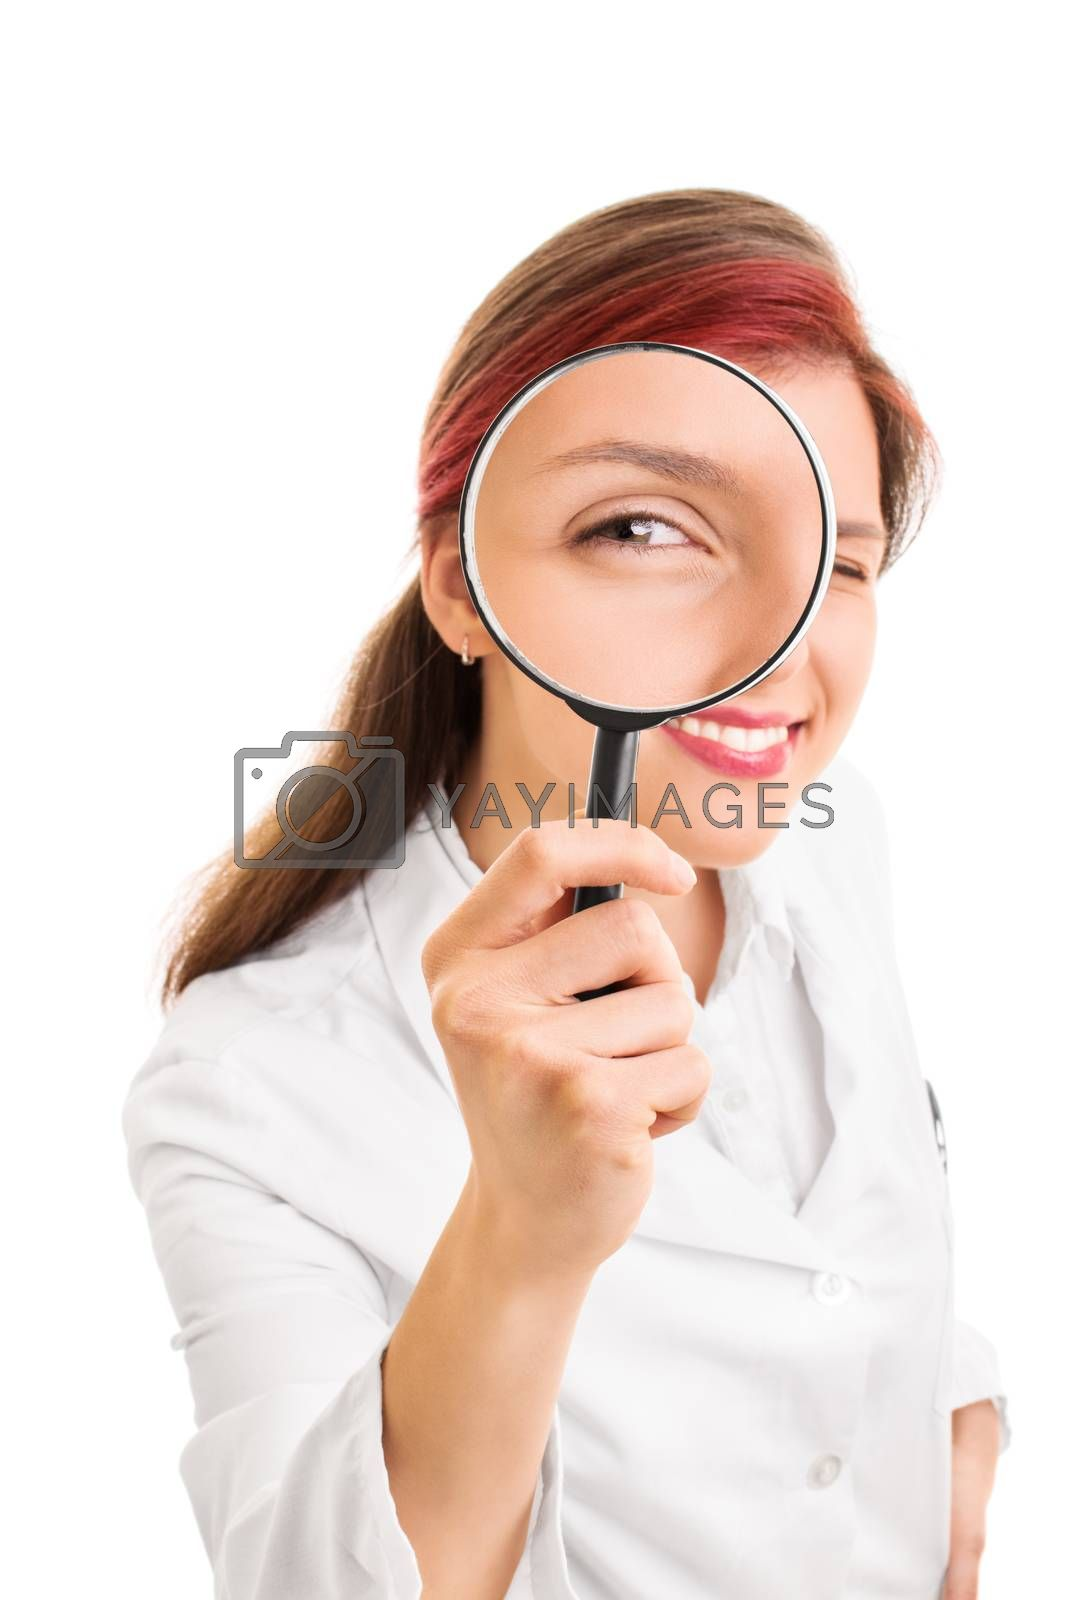 Let me take a look at you. Close up shot of a beautiful smiling young doctor looking though a magnifying glass, isolated on white background.